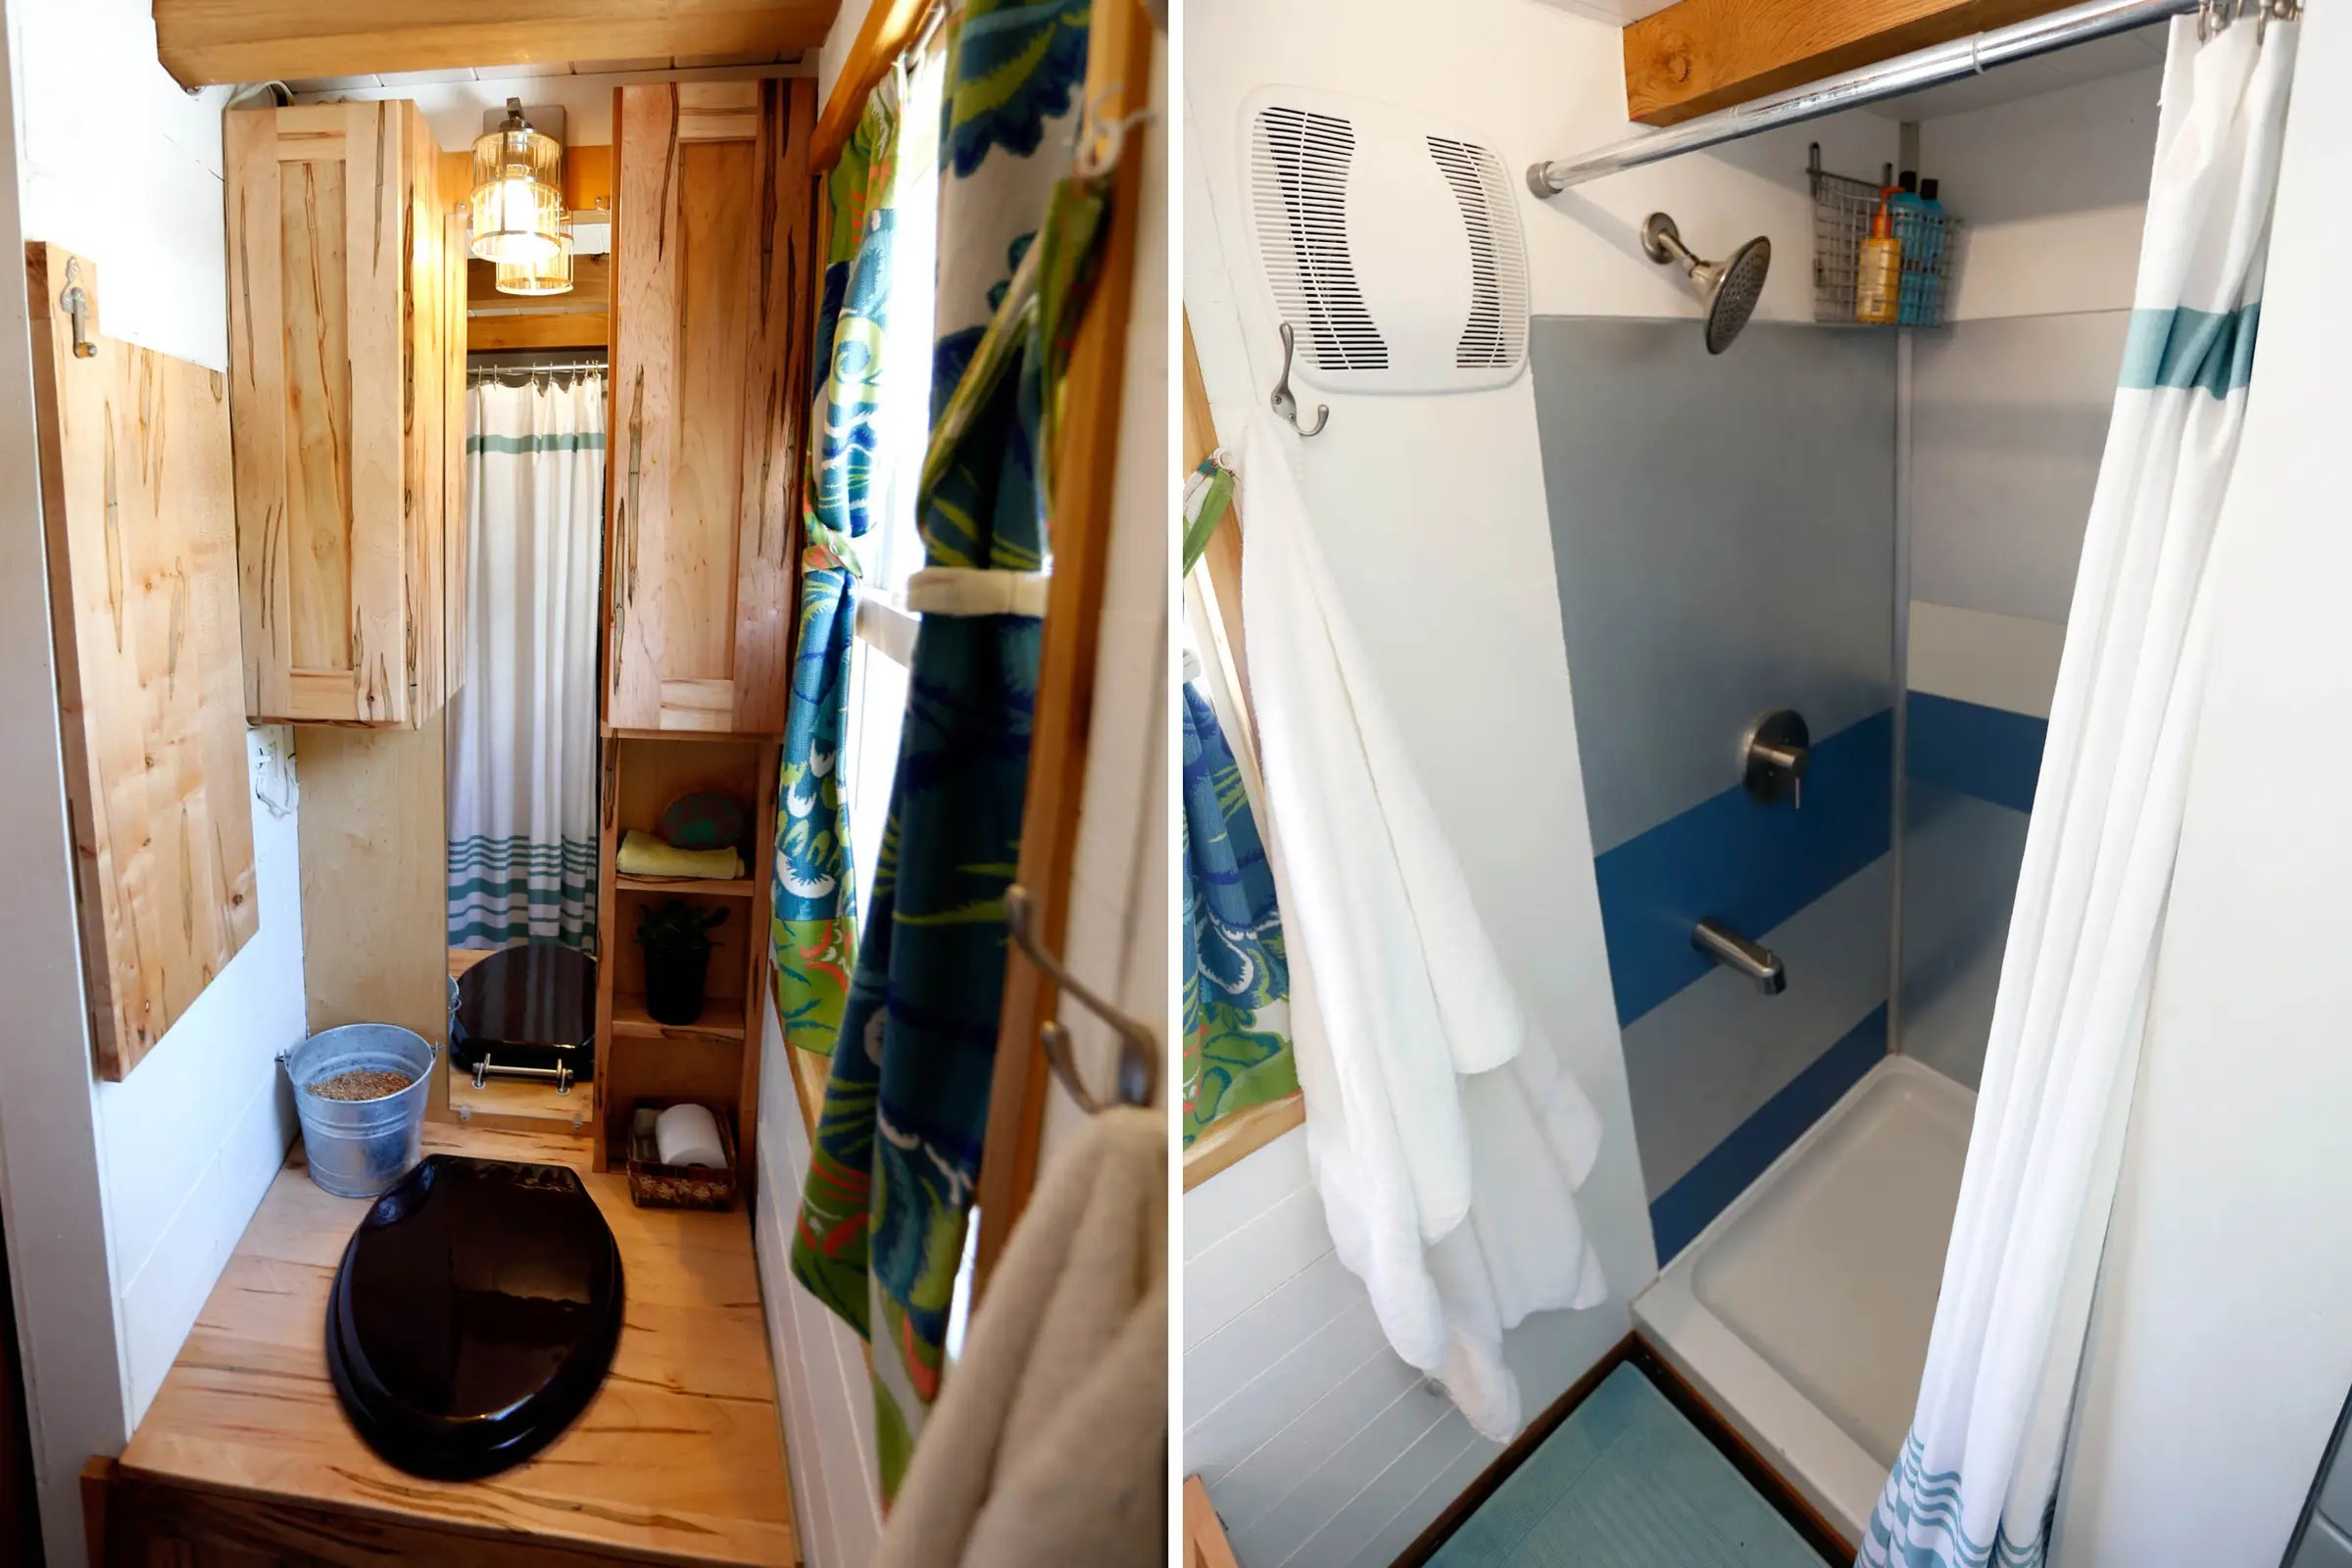 """The couple splurged on space for the shower, as well. It's 34 by 36 inches, larger than most tiny house showers, and includes a tub for """"feet washing."""""""